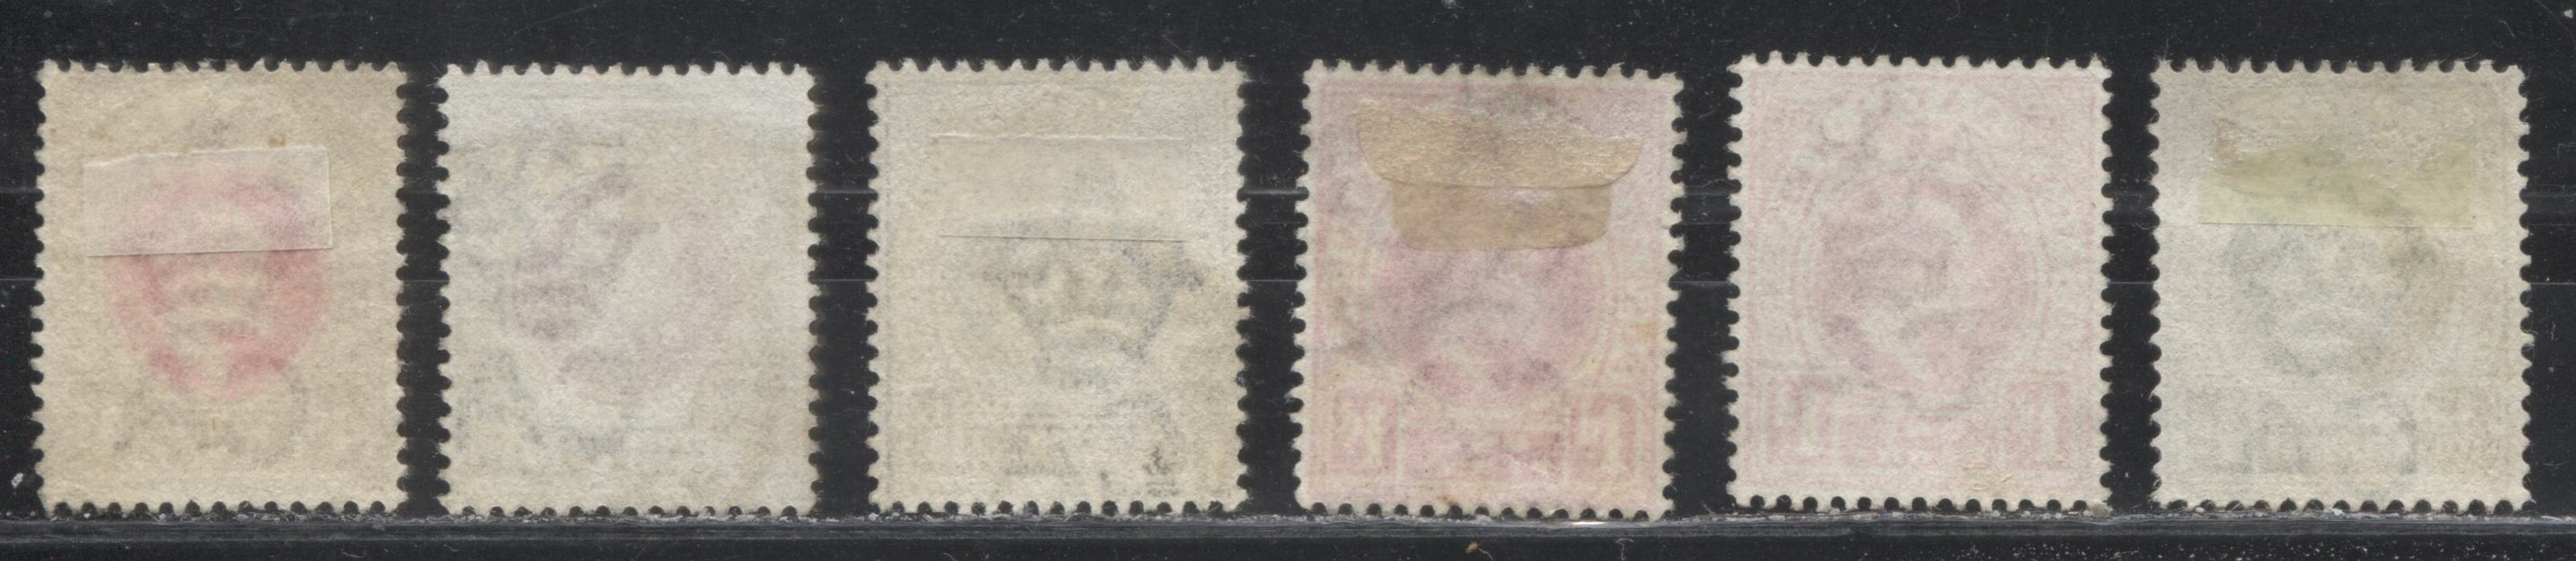 Natal #81/87 (SG#127/133) 1902-1903 King Edward VII Crown CA Keyplates, A Group of 6 Fine and VF Used Stamps